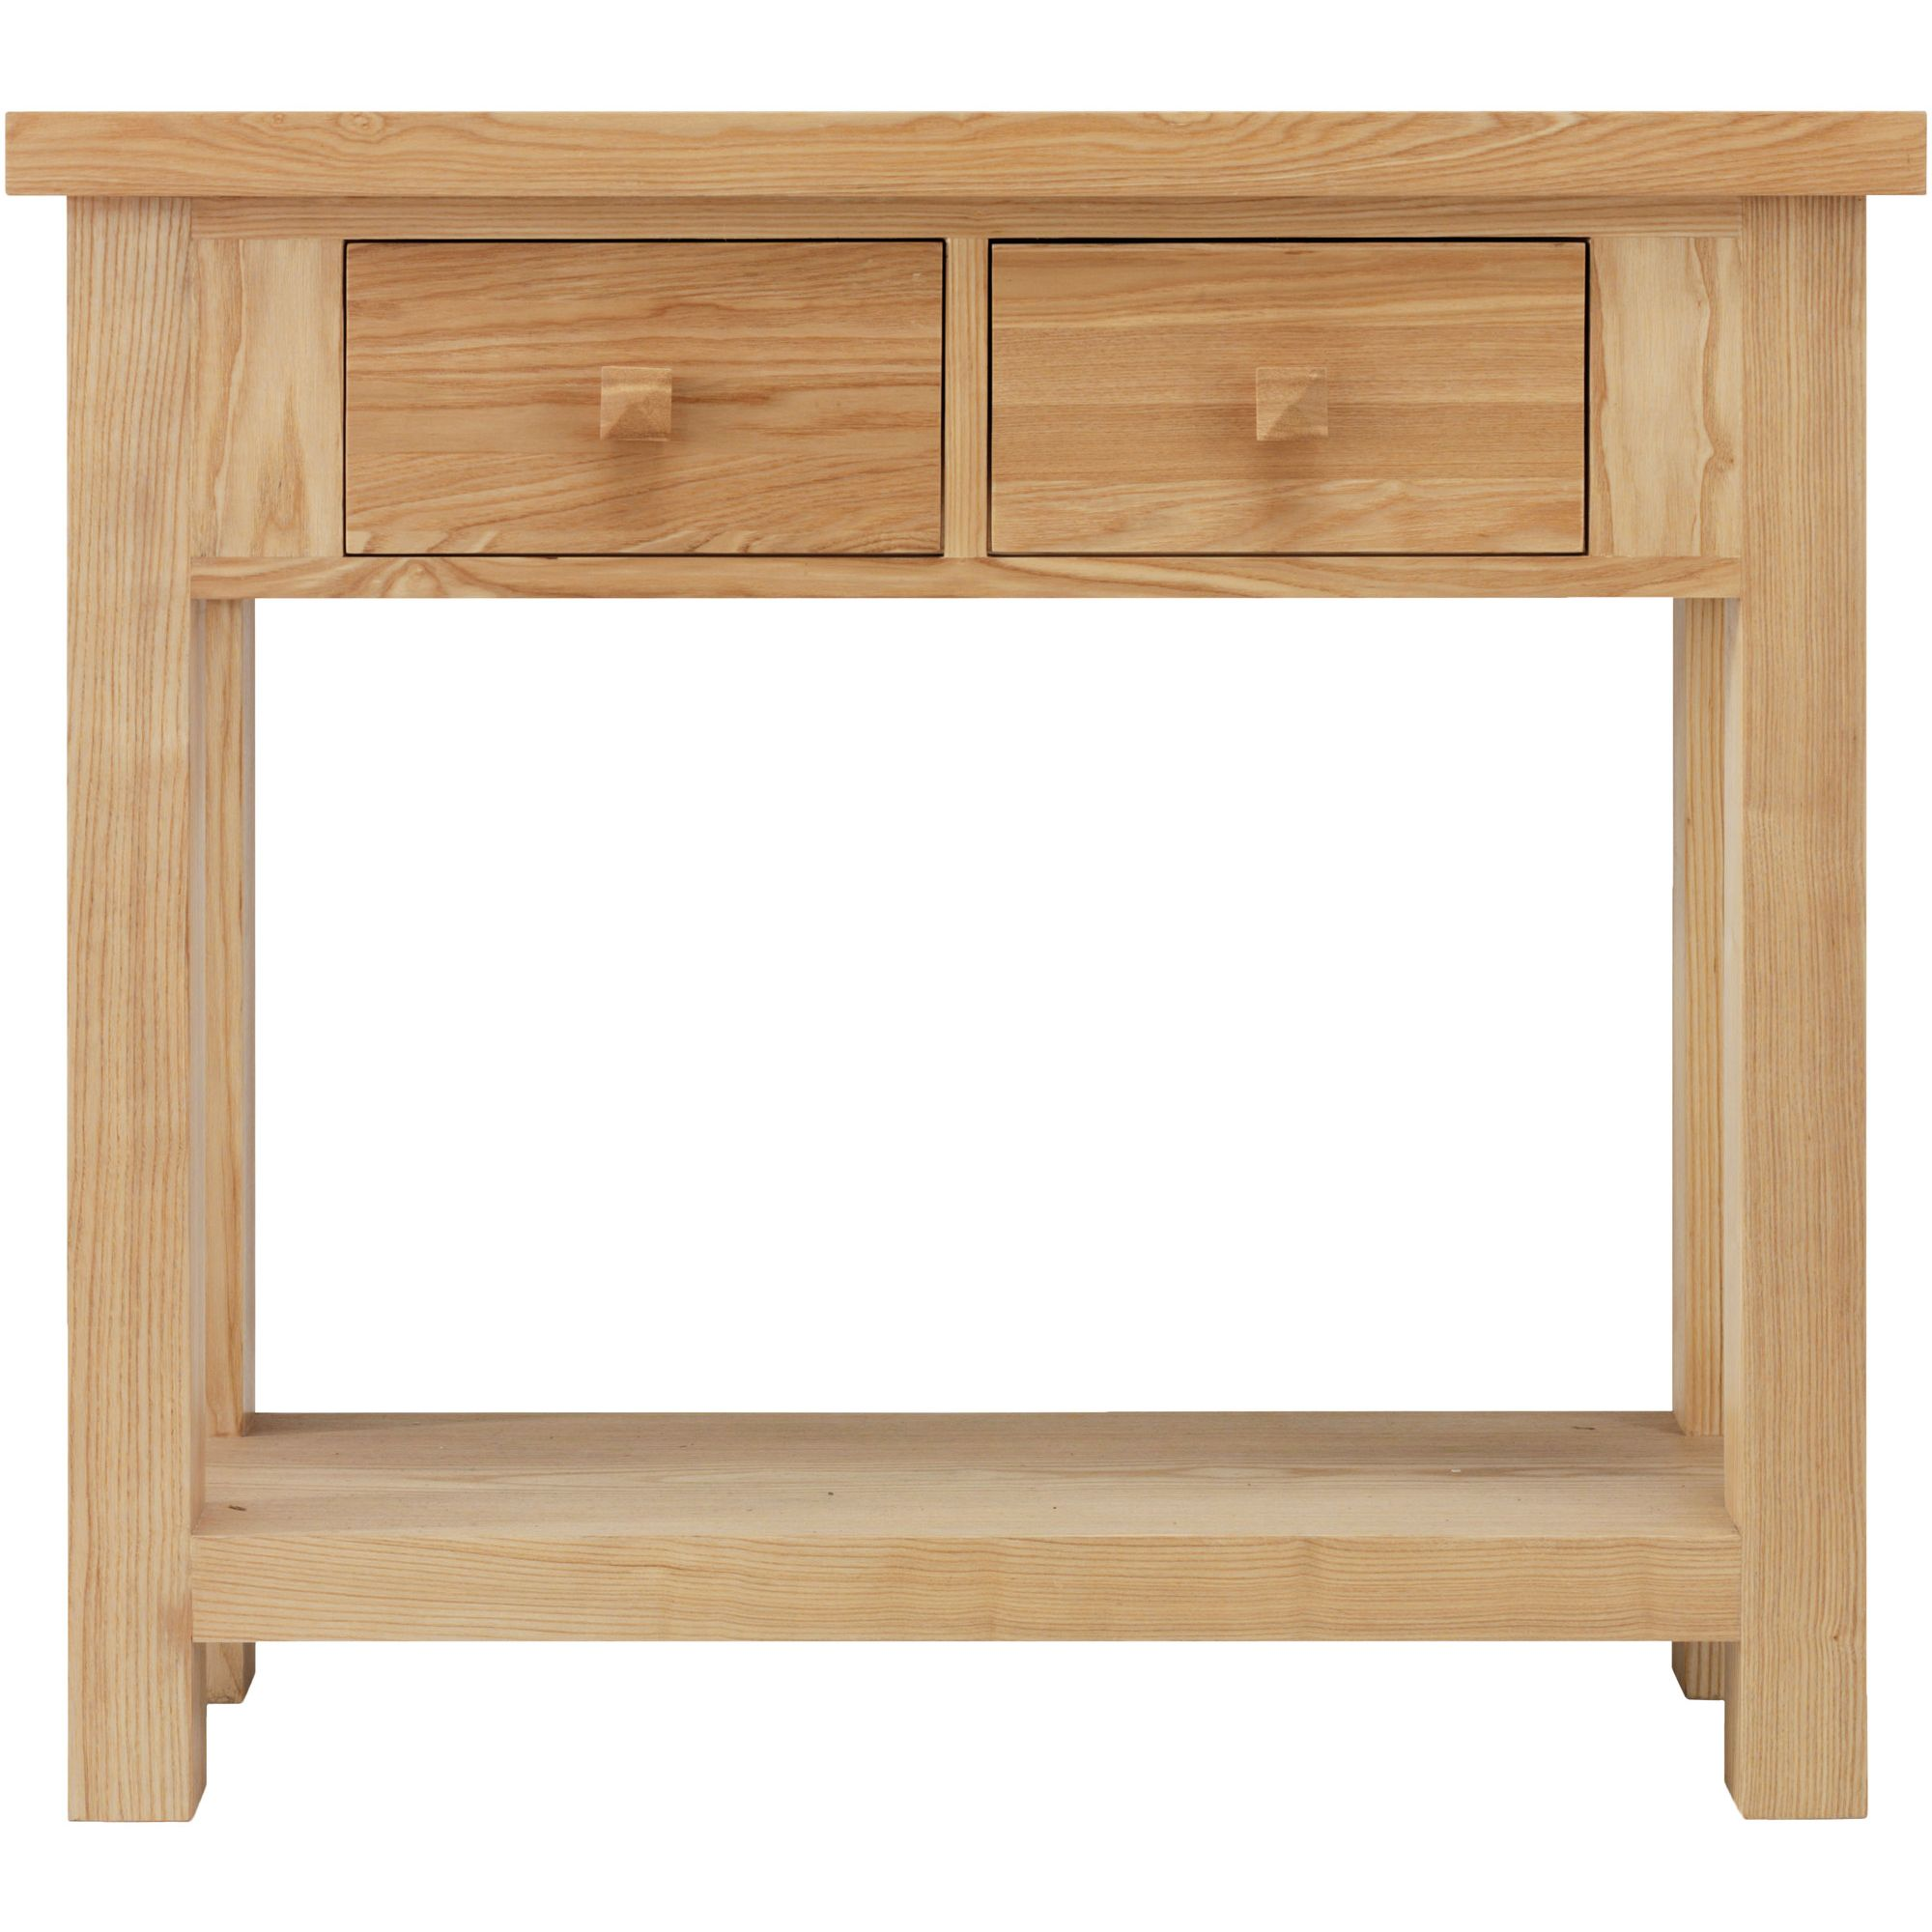 Originals Portland Console Table at Tesco Direct